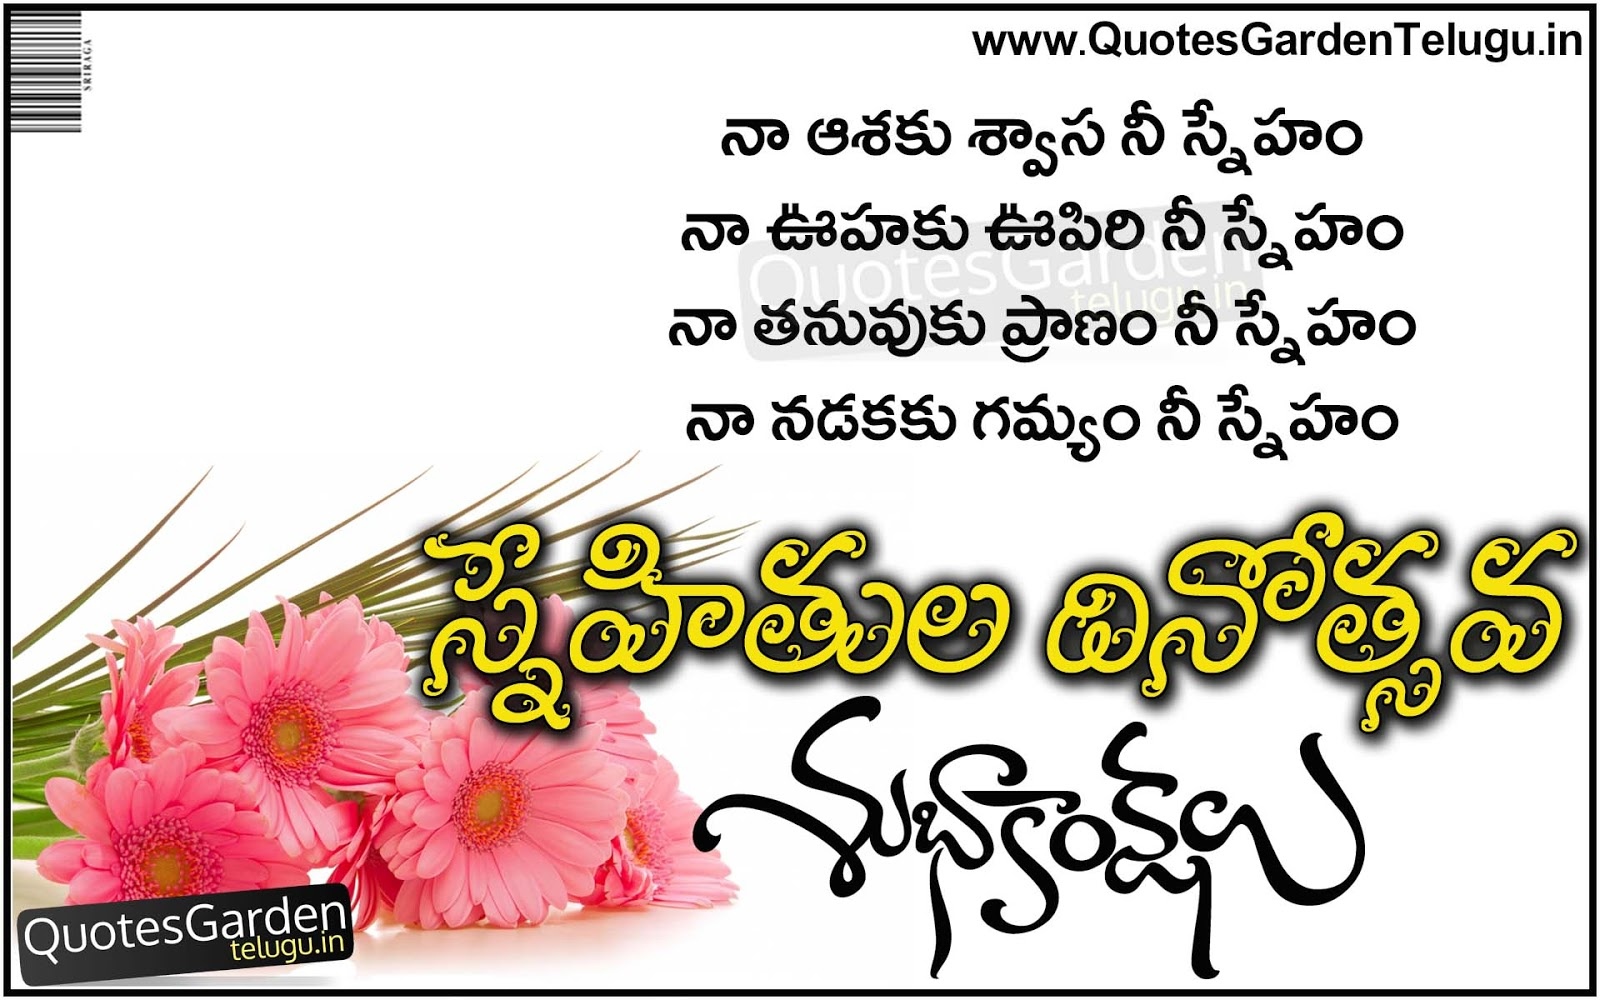 Latest Telugu Friendship Day 2016 Greetings Quotes Quotes Garden